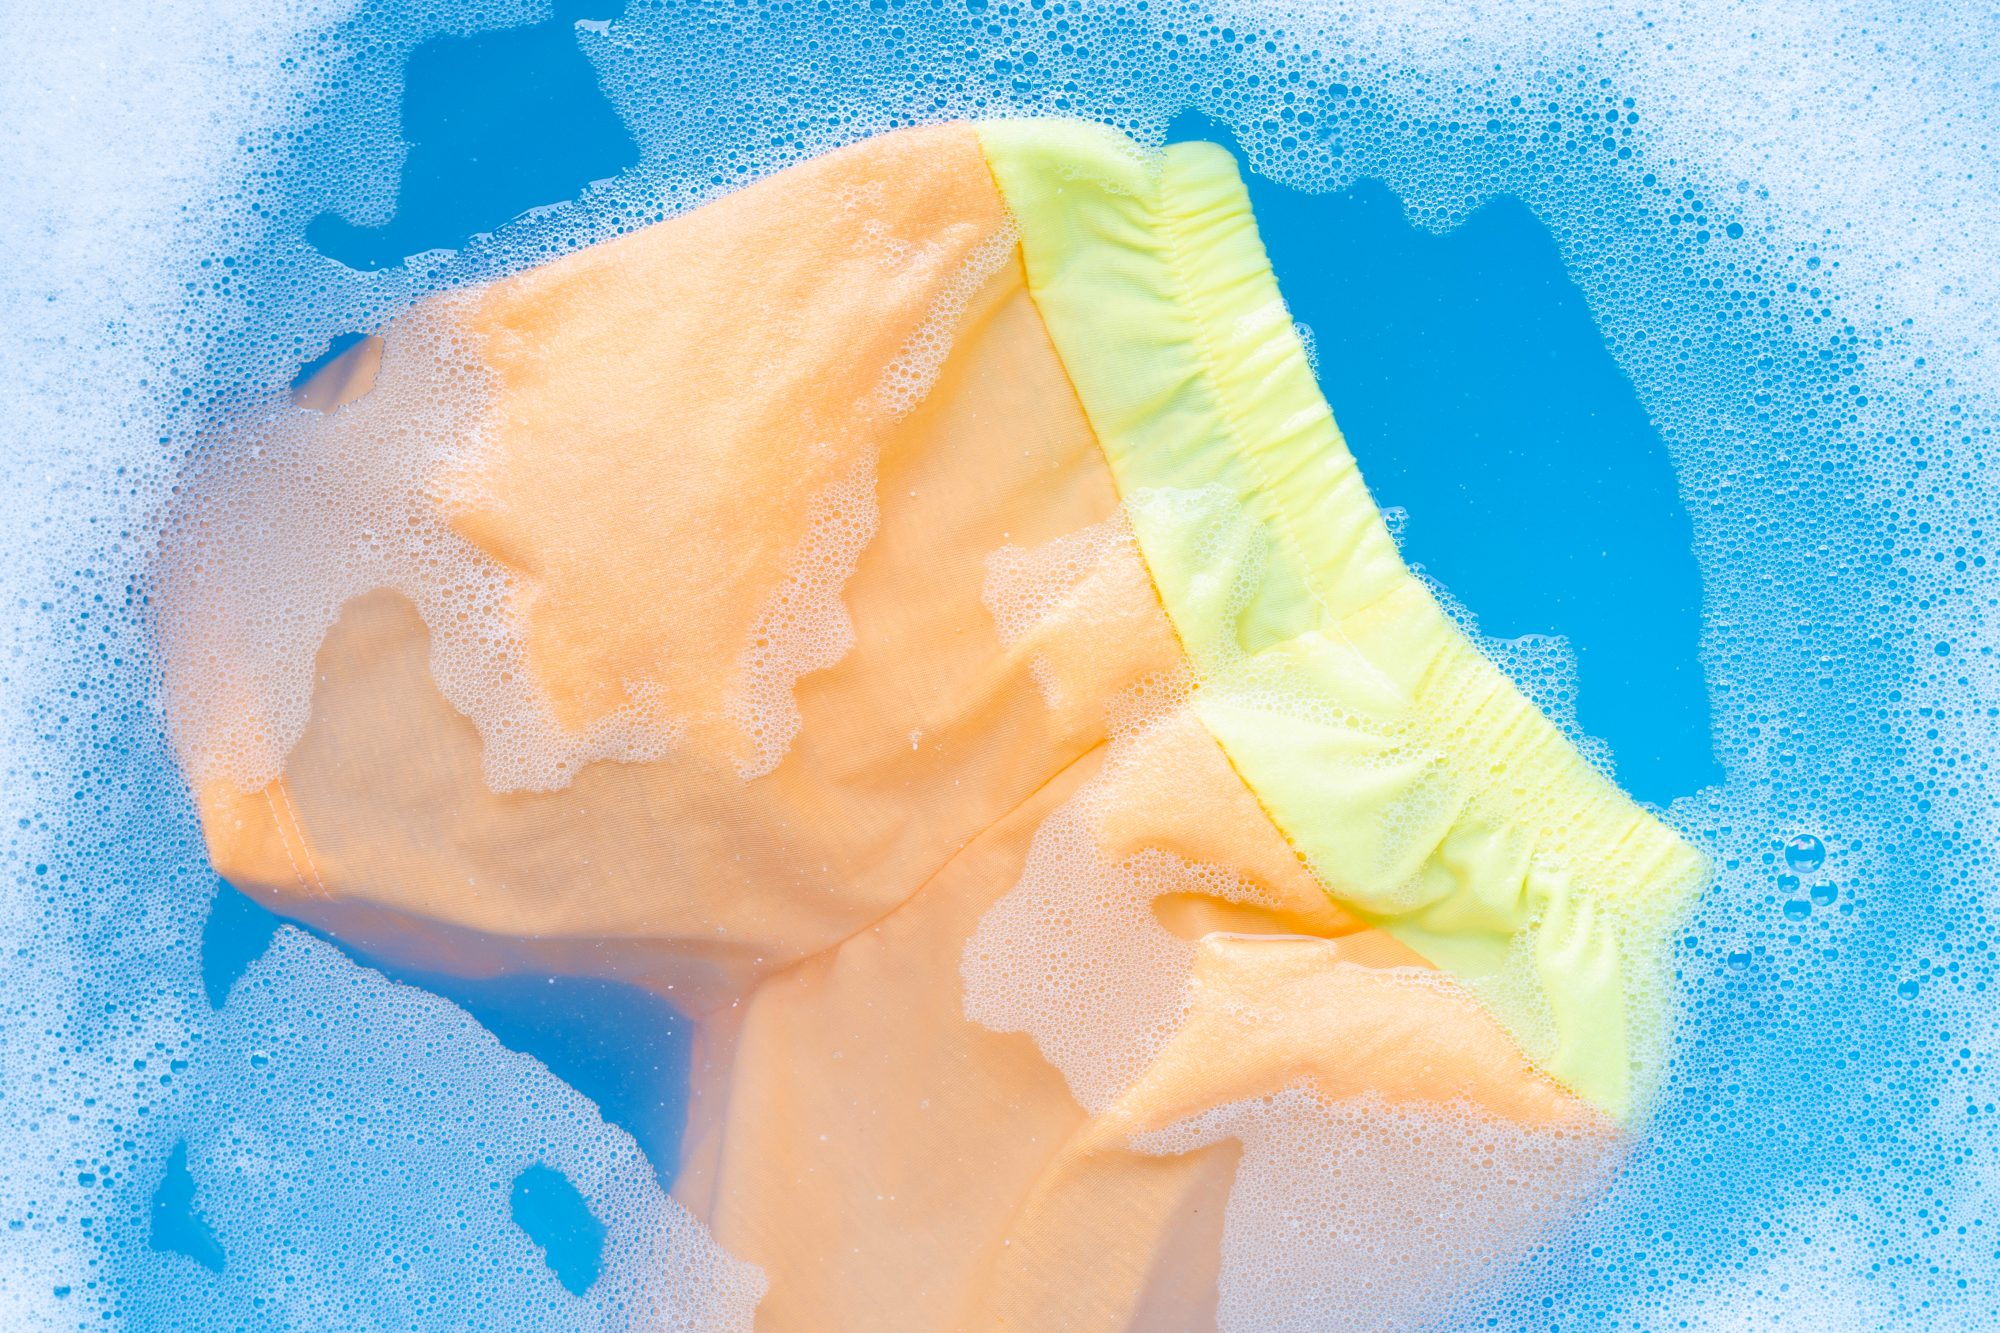 cleaning myths true or false, shorts in sudsy water